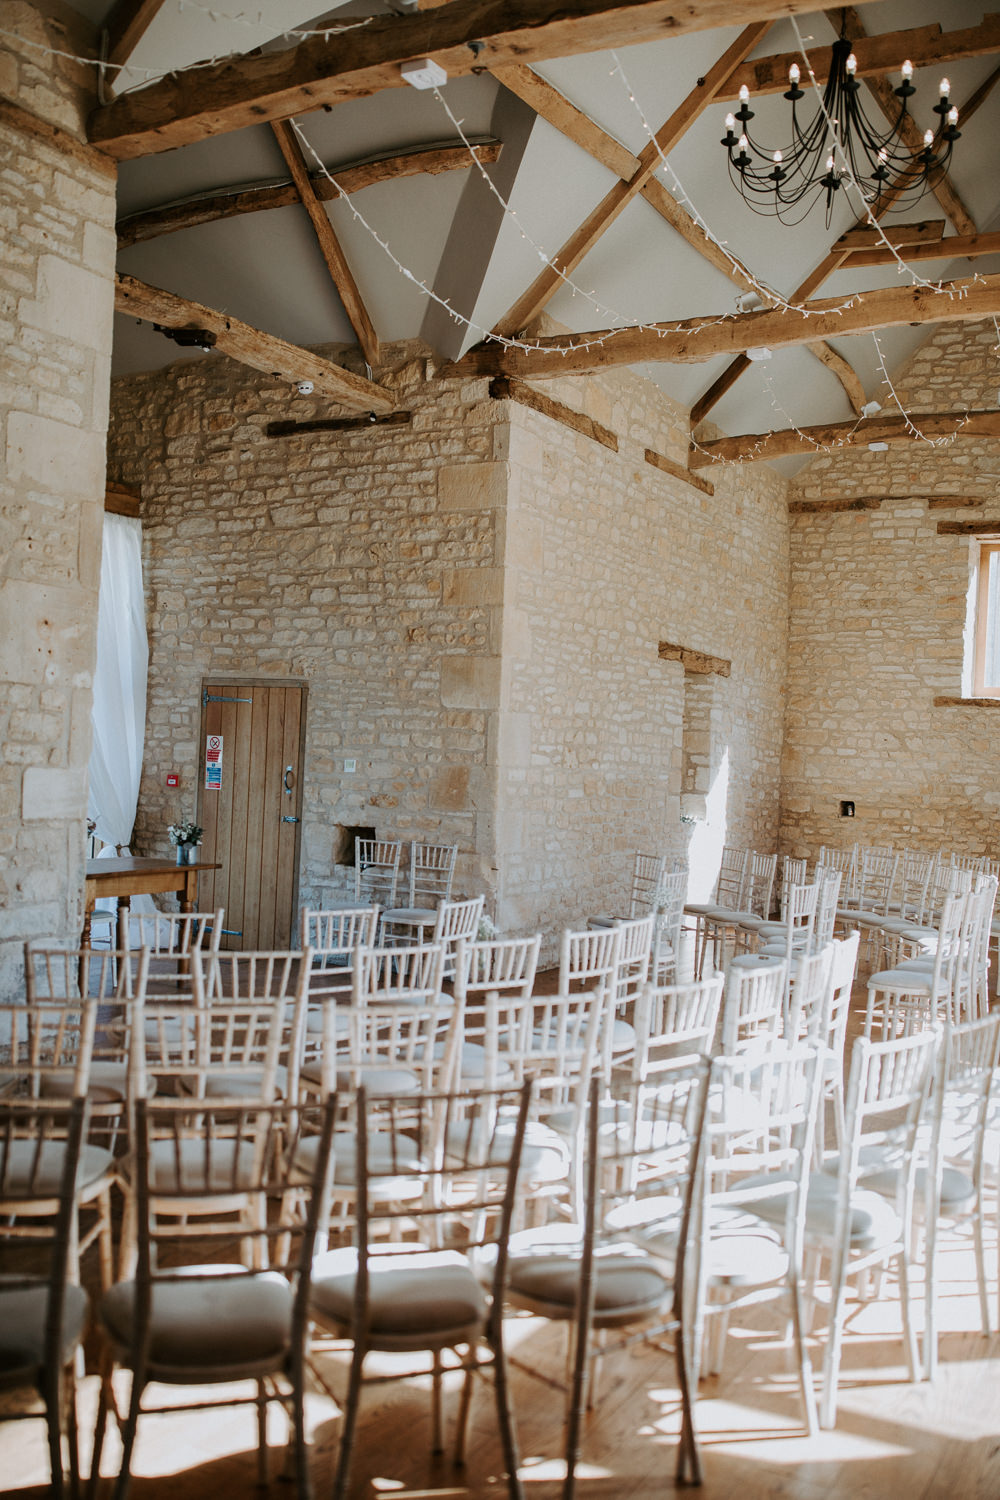 Ceremony Chairs Set Up Barn Upcote Wedding Siobhan Beales Photography